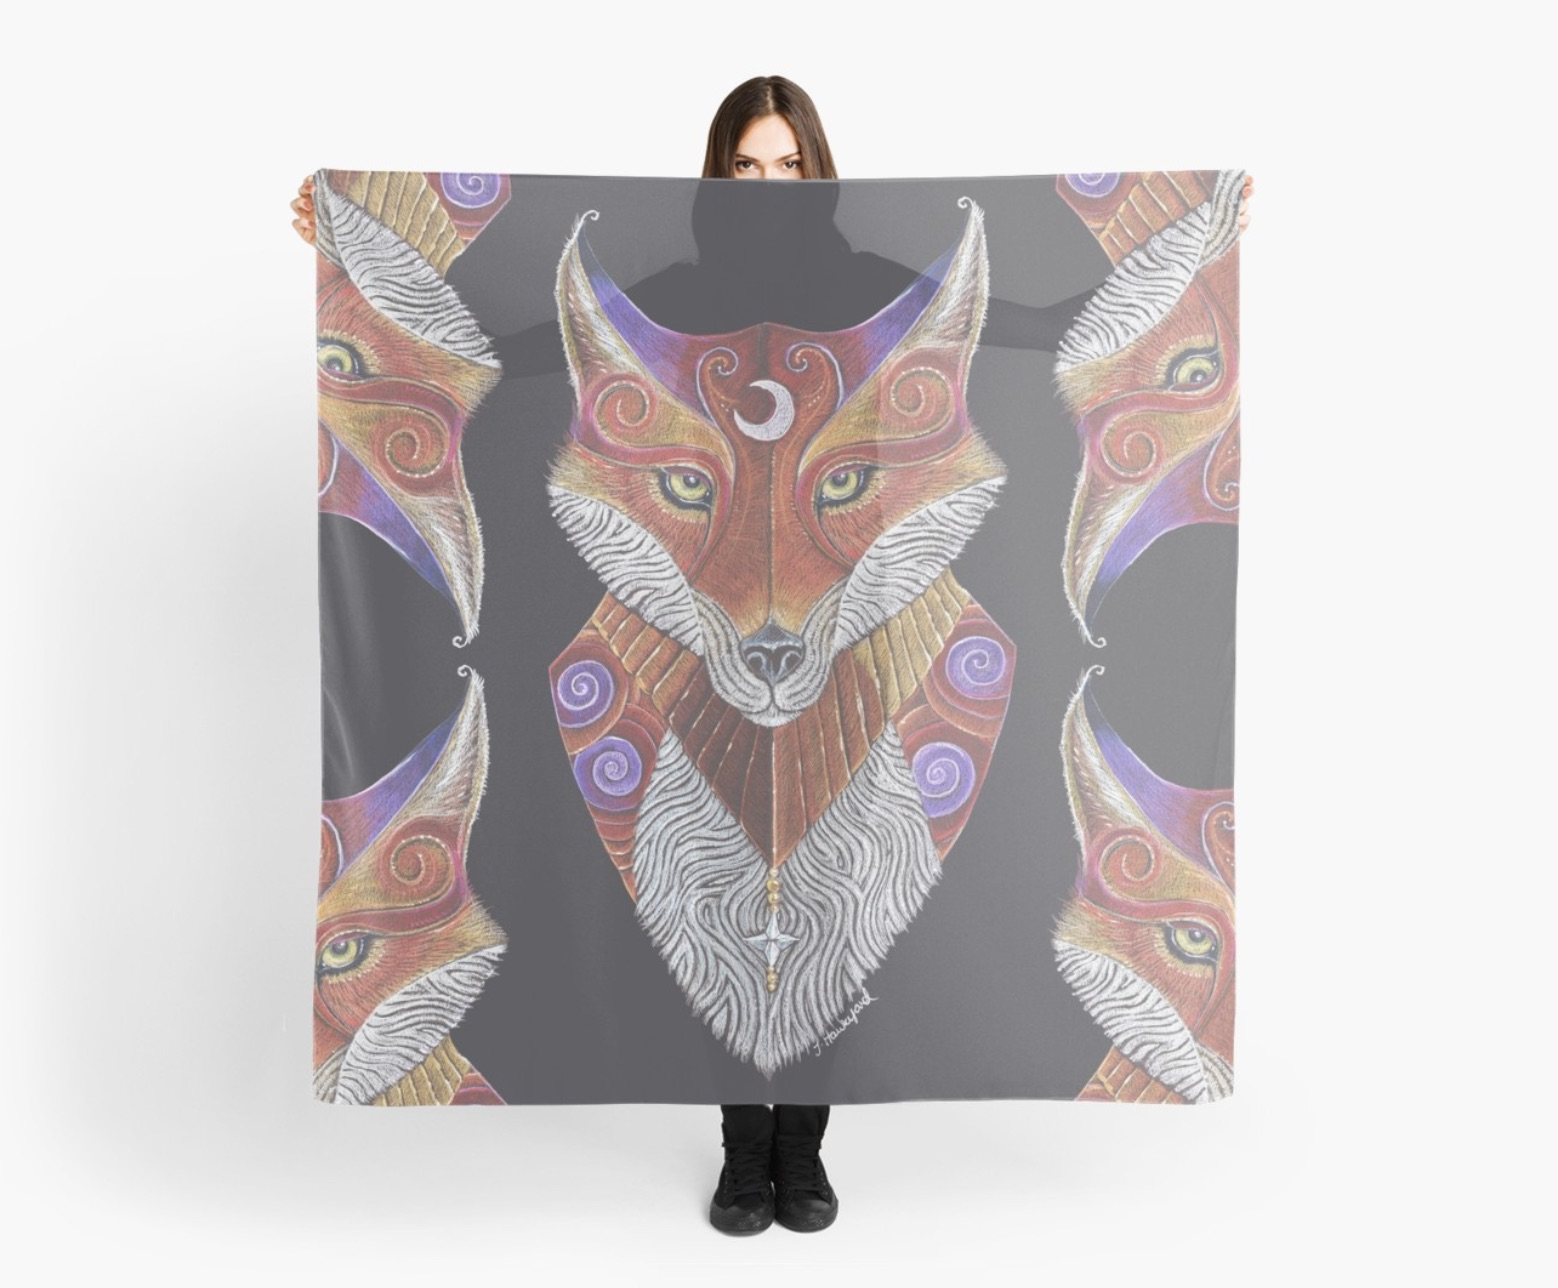 Apparel, accessories and home decor items available on redbubble